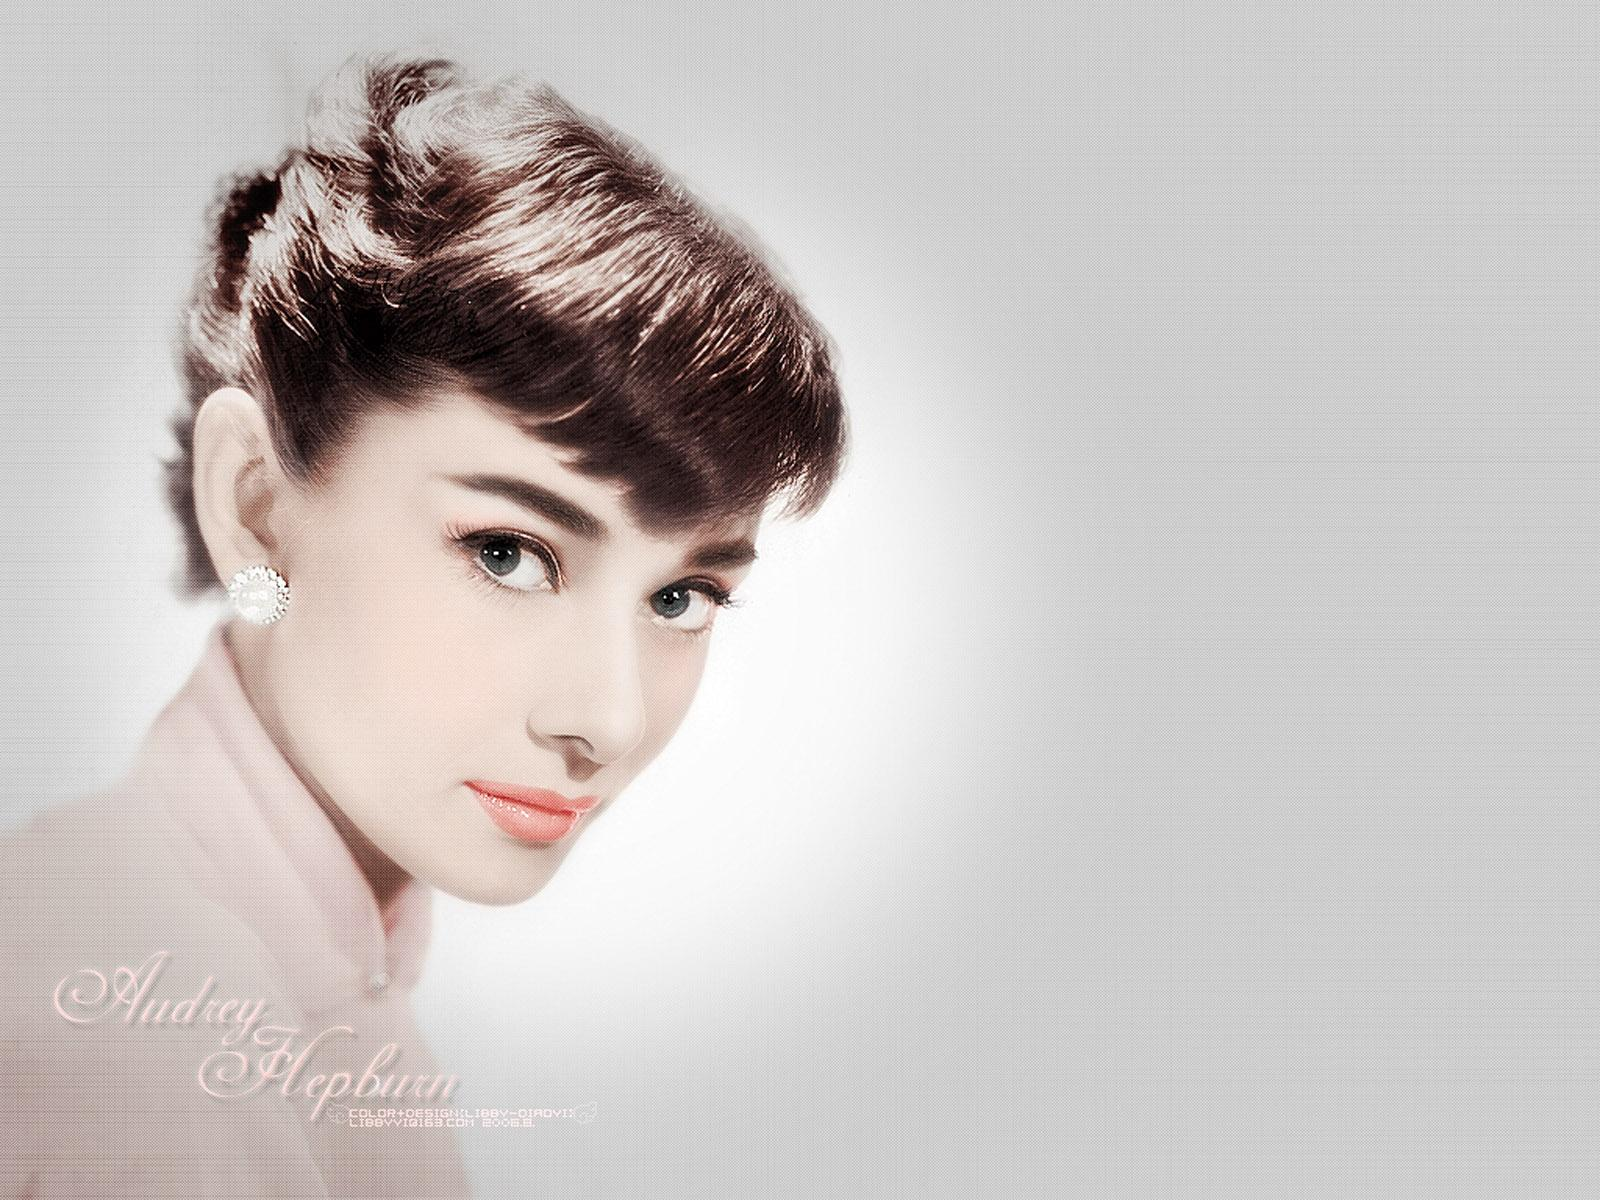 Audrey hepburn wallpaper 1600x1200